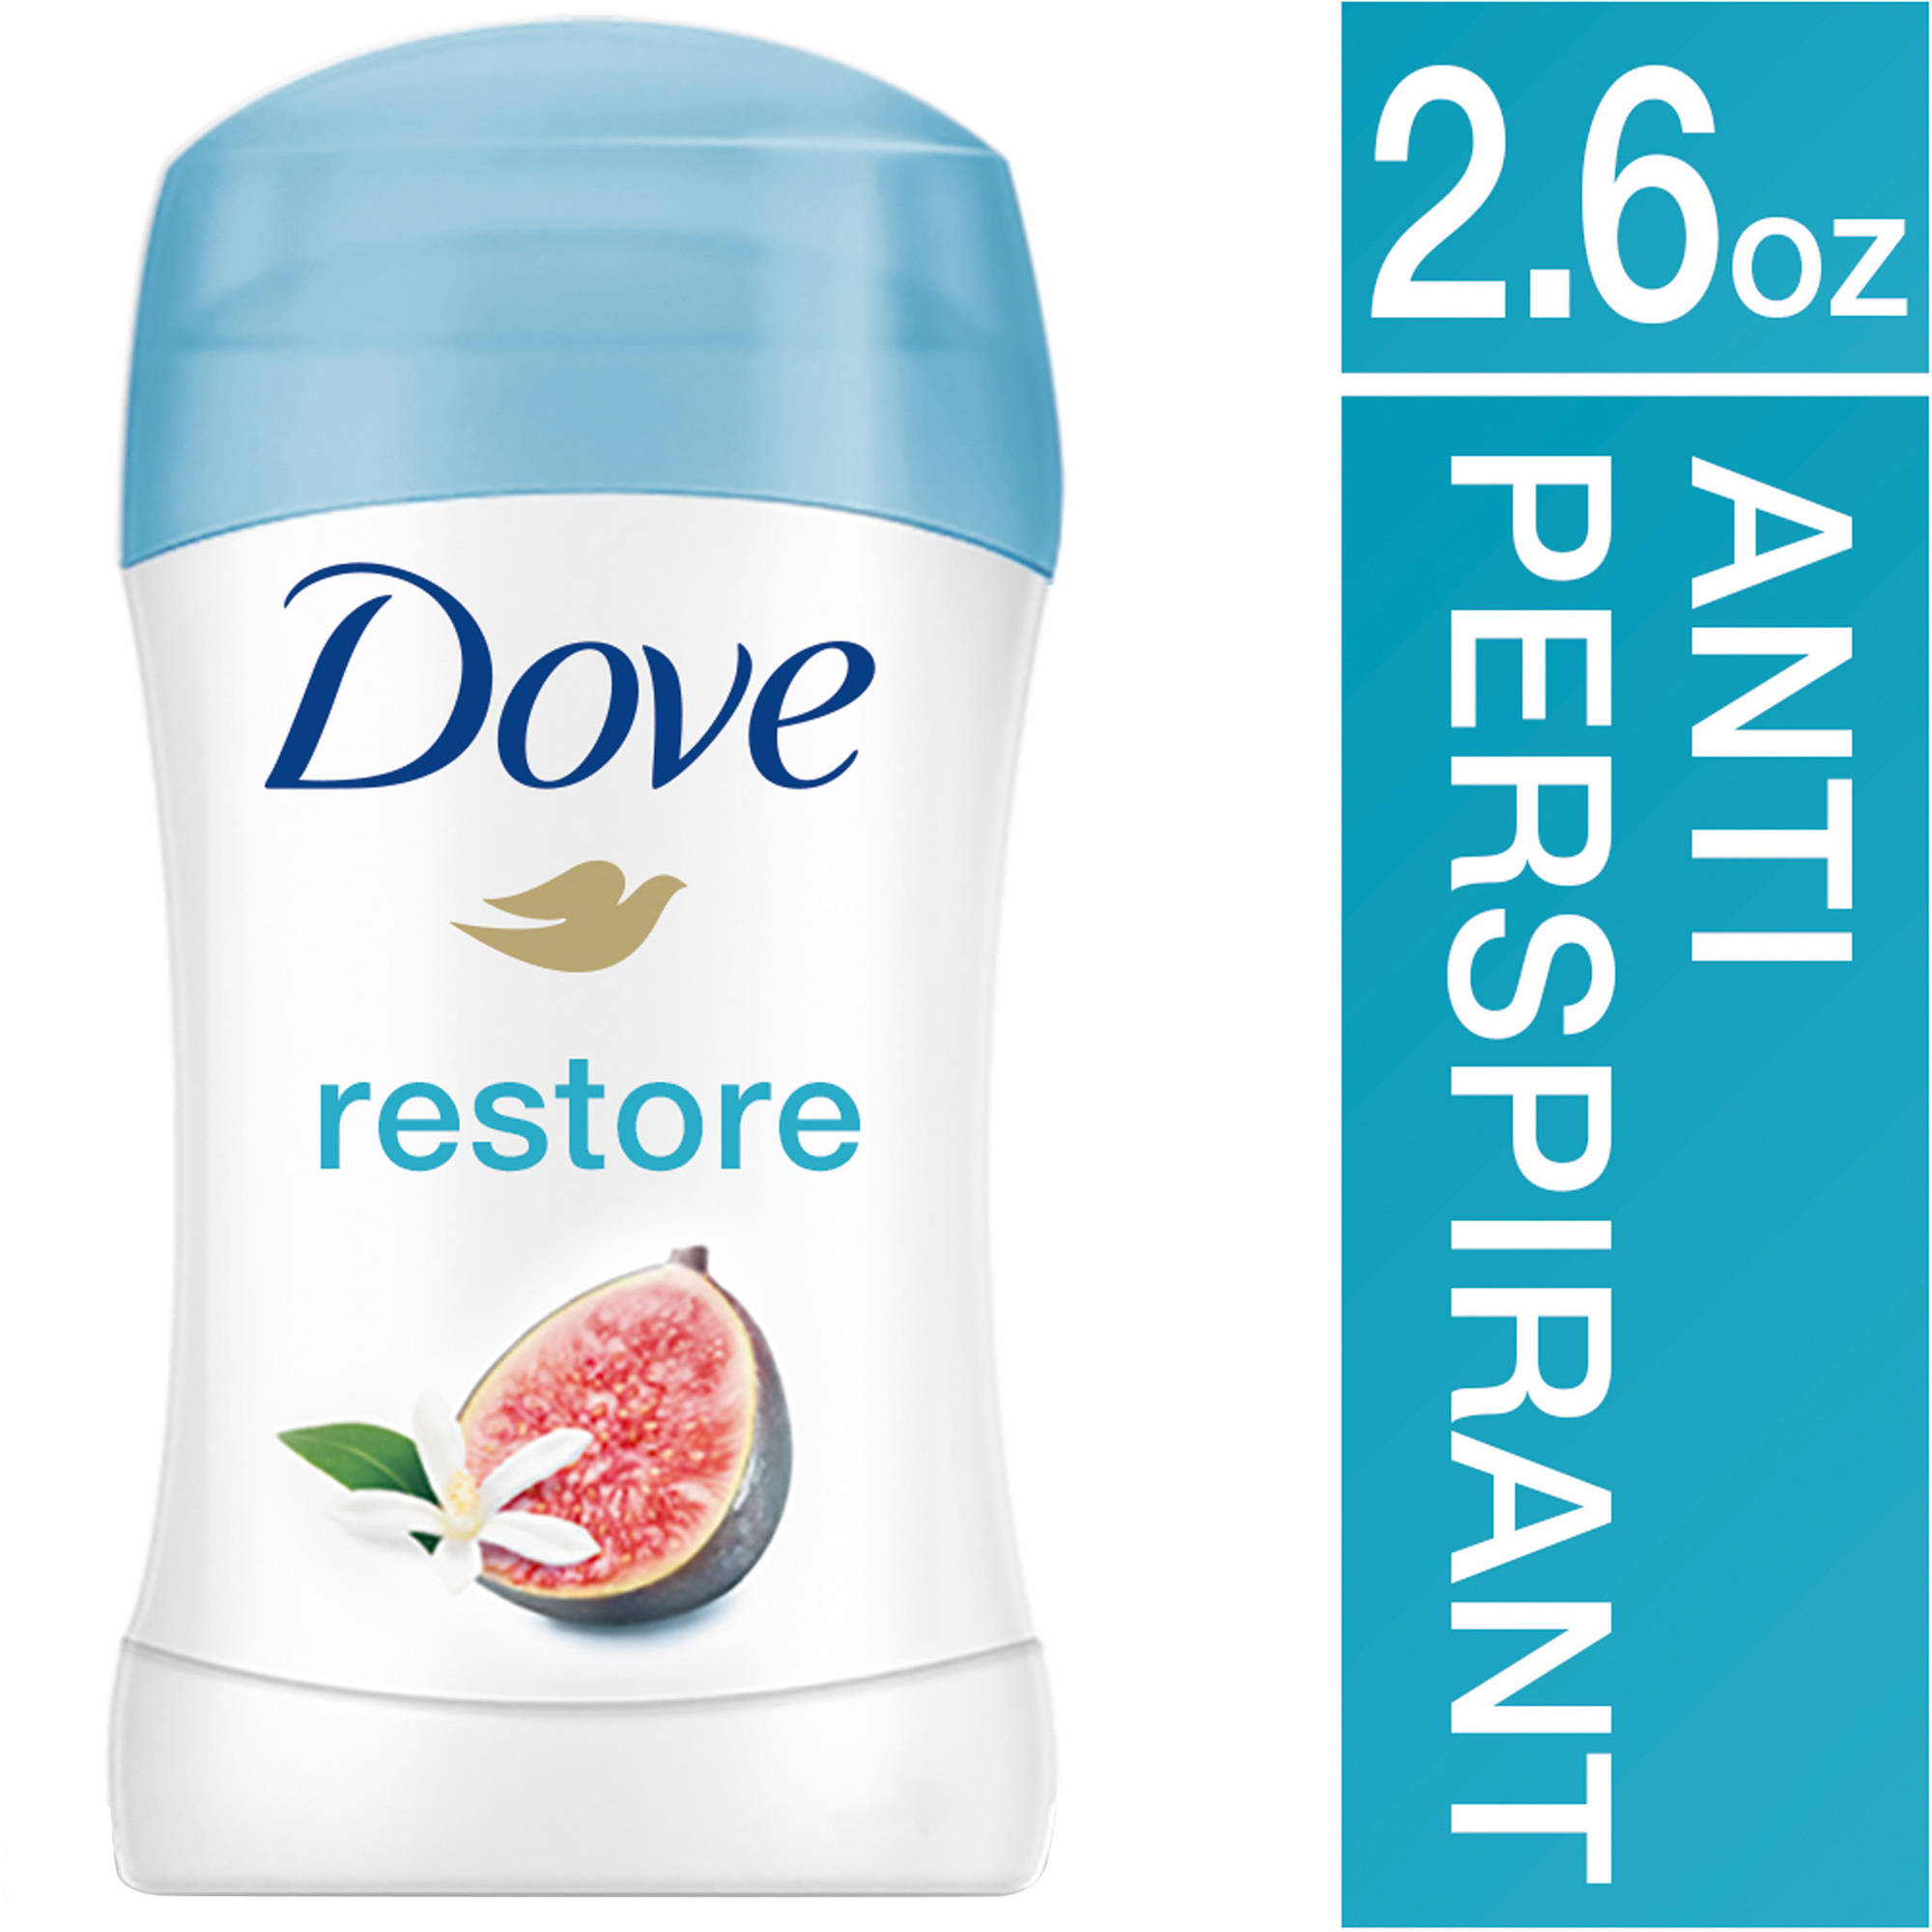 Dove go fresh Restore Antiperspirant Deodorant, 2.6 oz